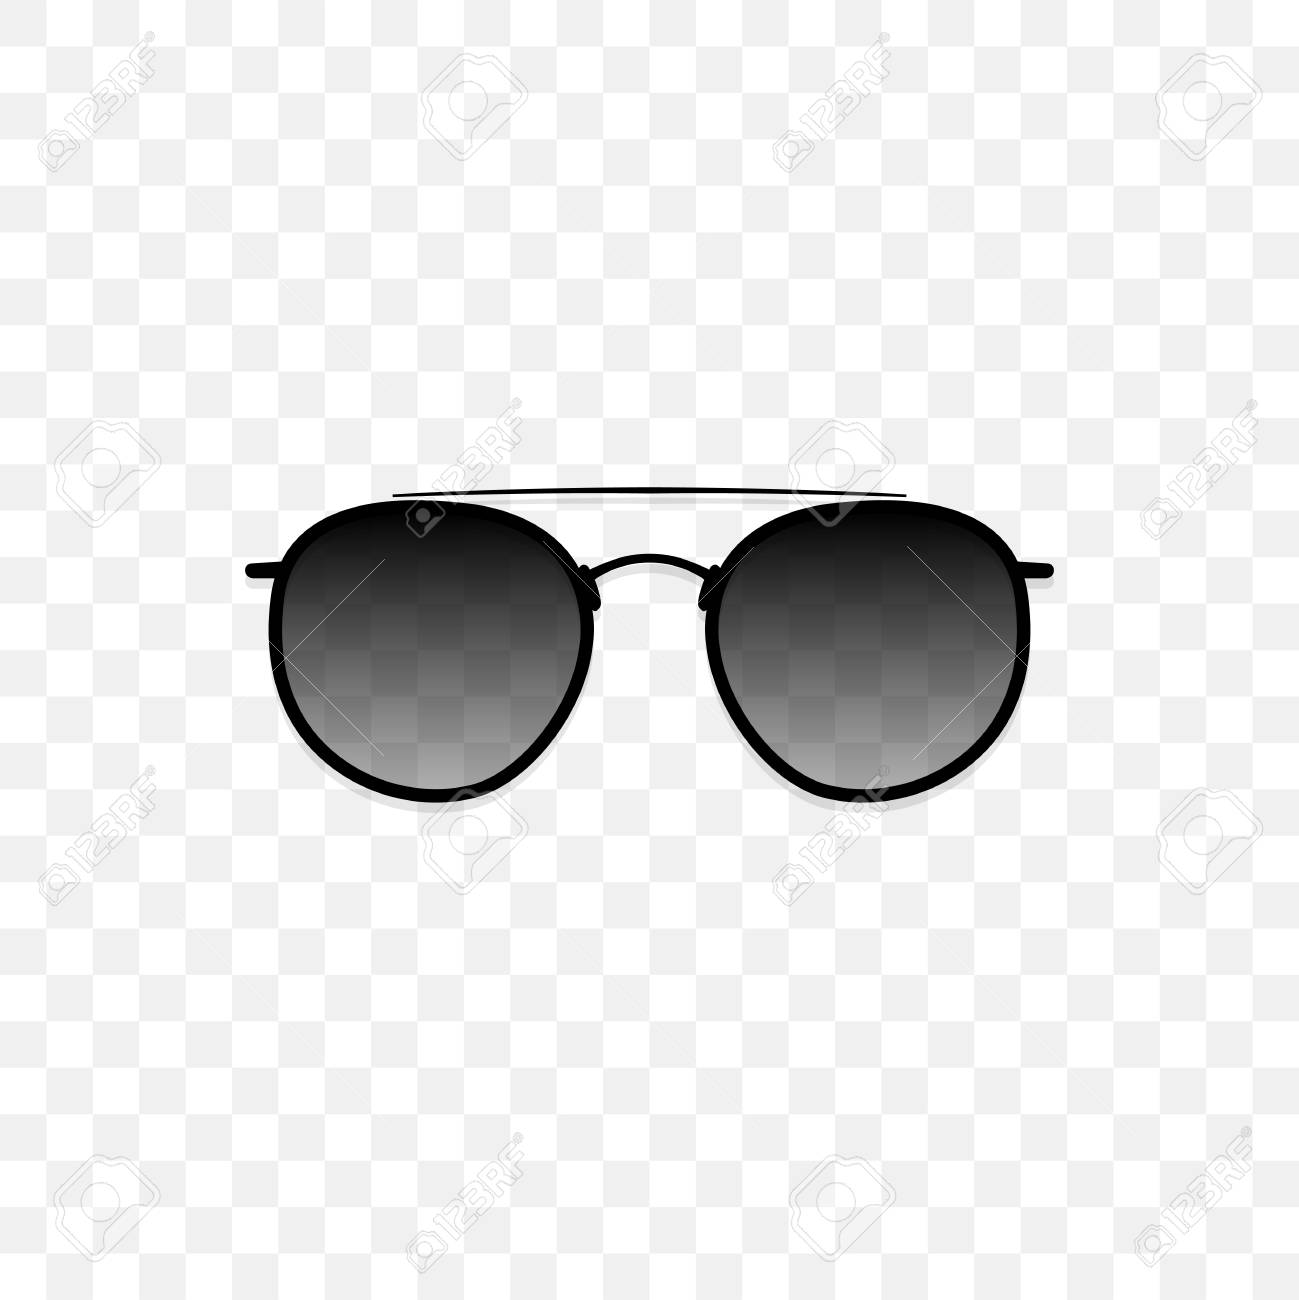 Realistic Sunglasses With A Translucent Black Glass On A Transparent Royalty Free Cliparts Vectors And Stock Illustration Image 90314910 You'll receive email and feed alerts when new items arrive. realistic sunglasses with a translucent black glass on a transparent